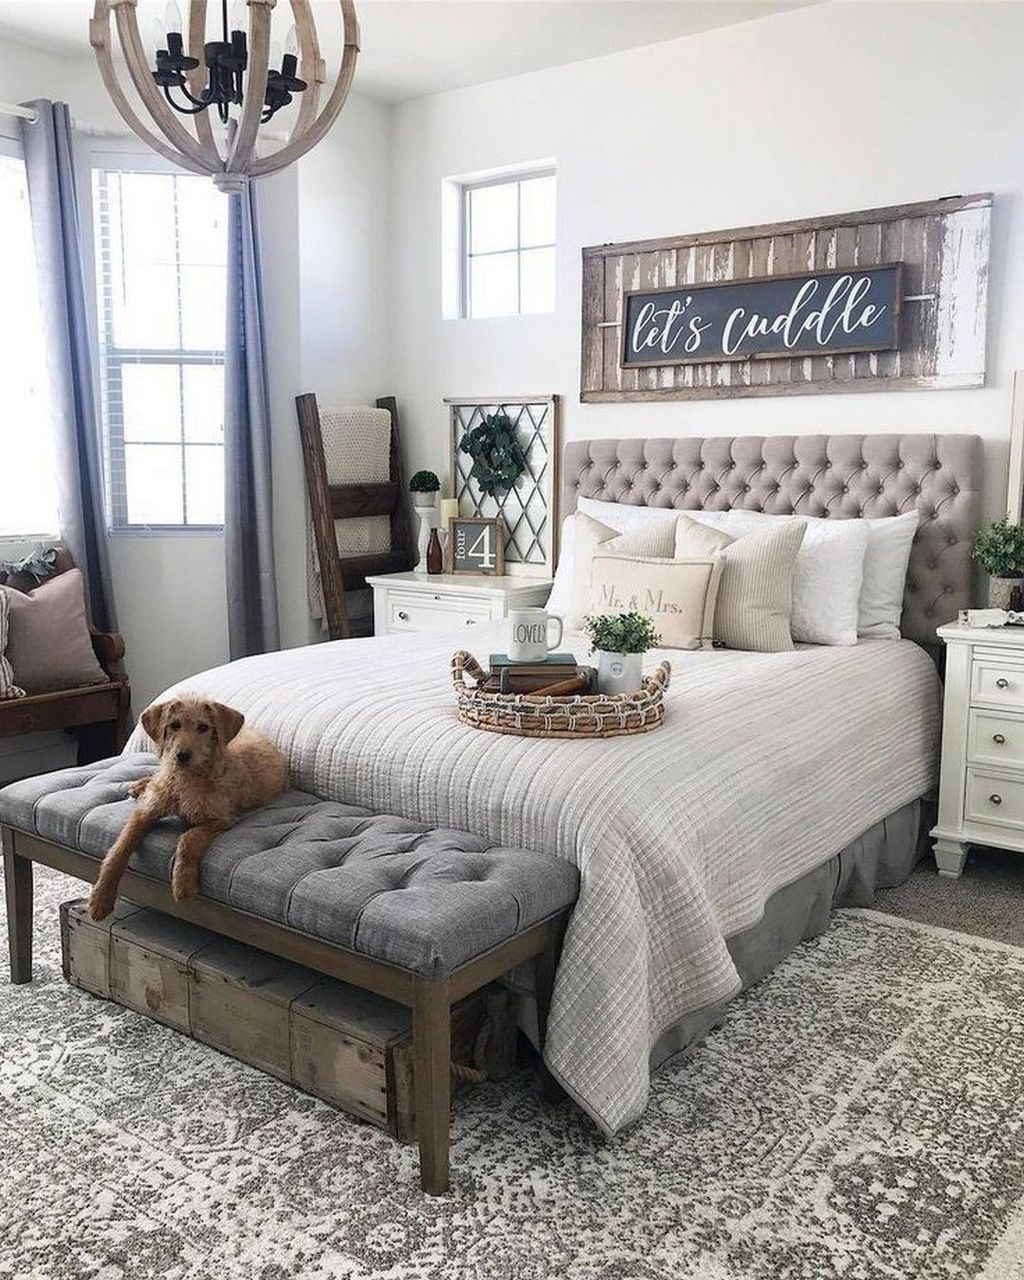 Country Farmhouse Decor Whether You Have A Century Old House Upon Acres Of Estate Or A Newer House In 2020 Rustic Master Bedroom Master Bedrooms Decor Remodel Bedroom